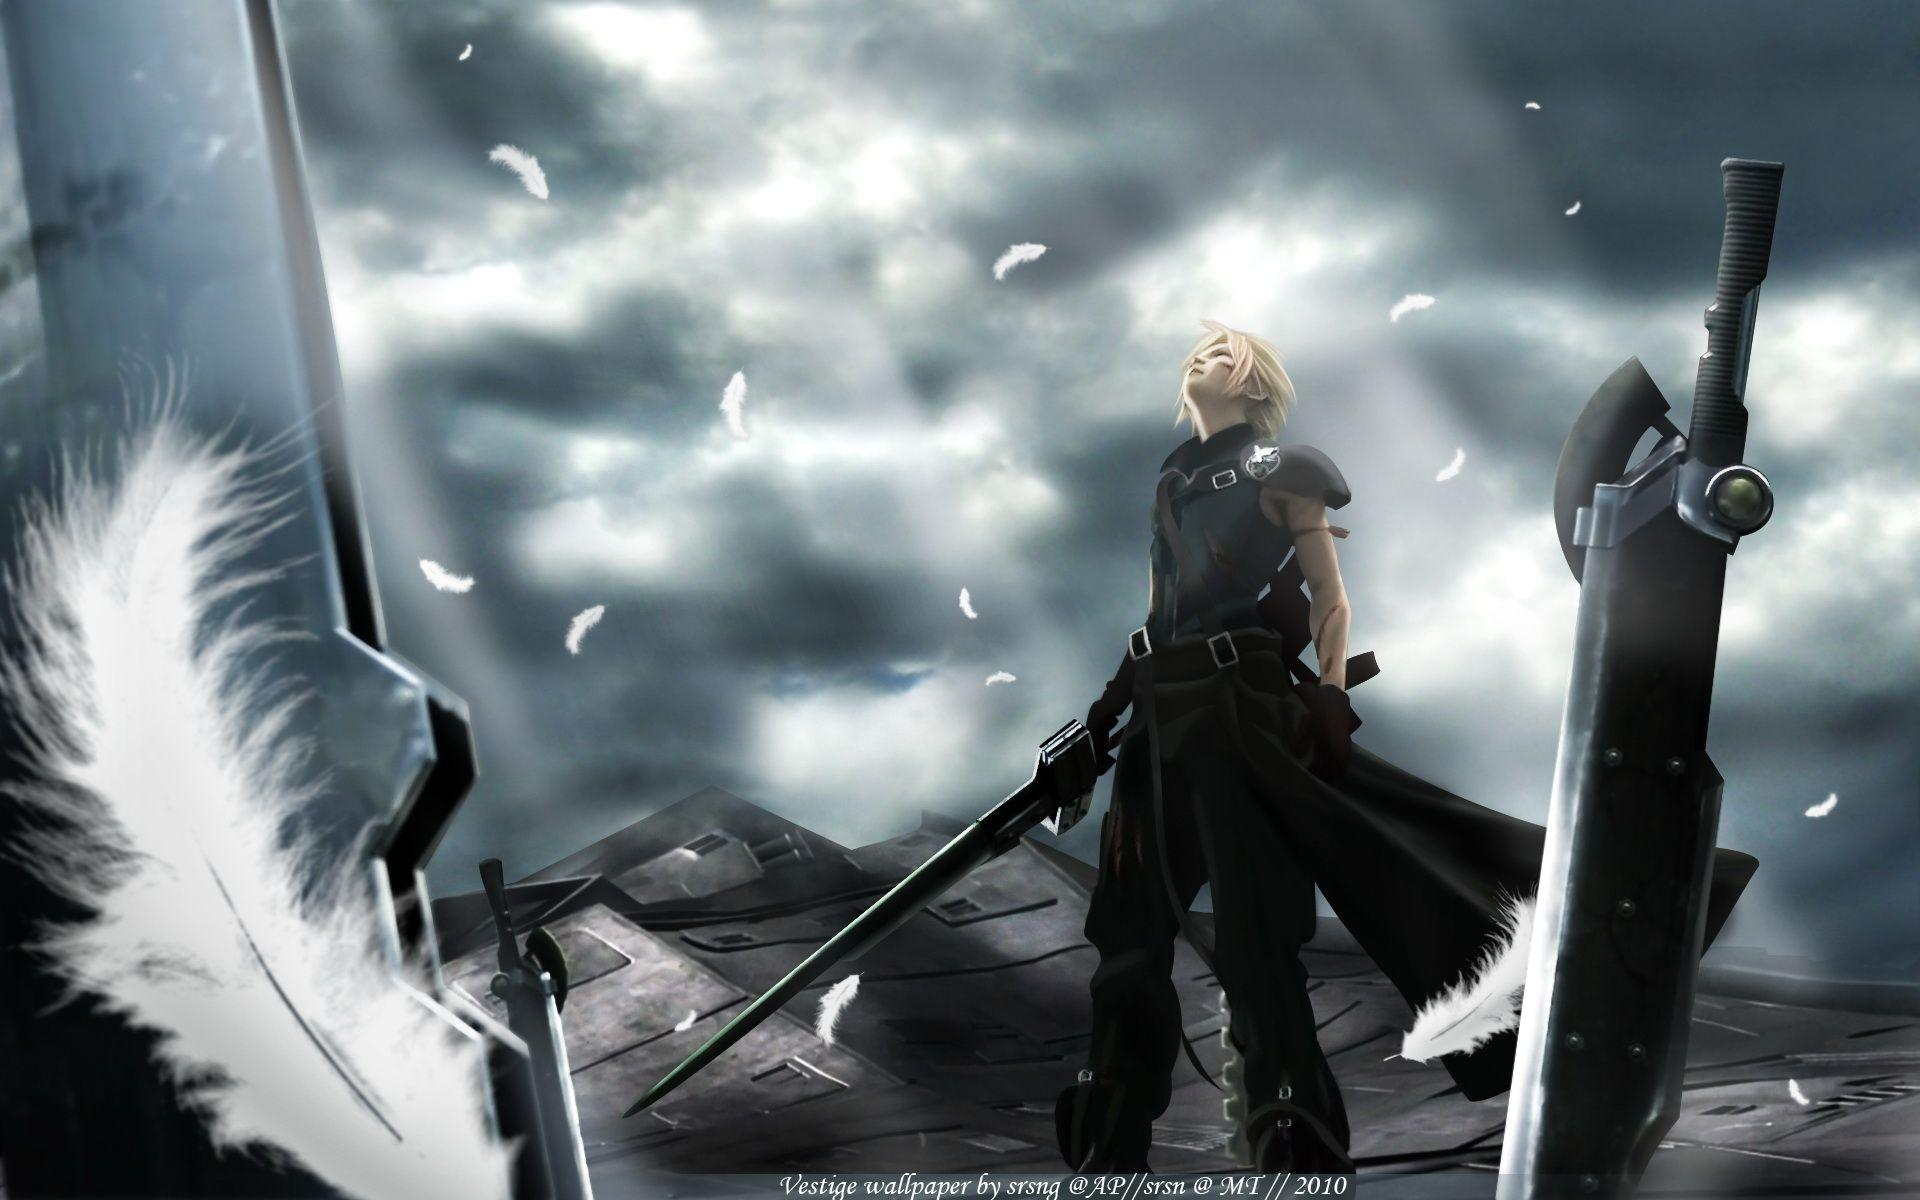 Crisis core final fantasy vii wallpapers wallpaper cave final fantasy final fantasy vii crisis core games 1920x1200 altavistaventures Gallery